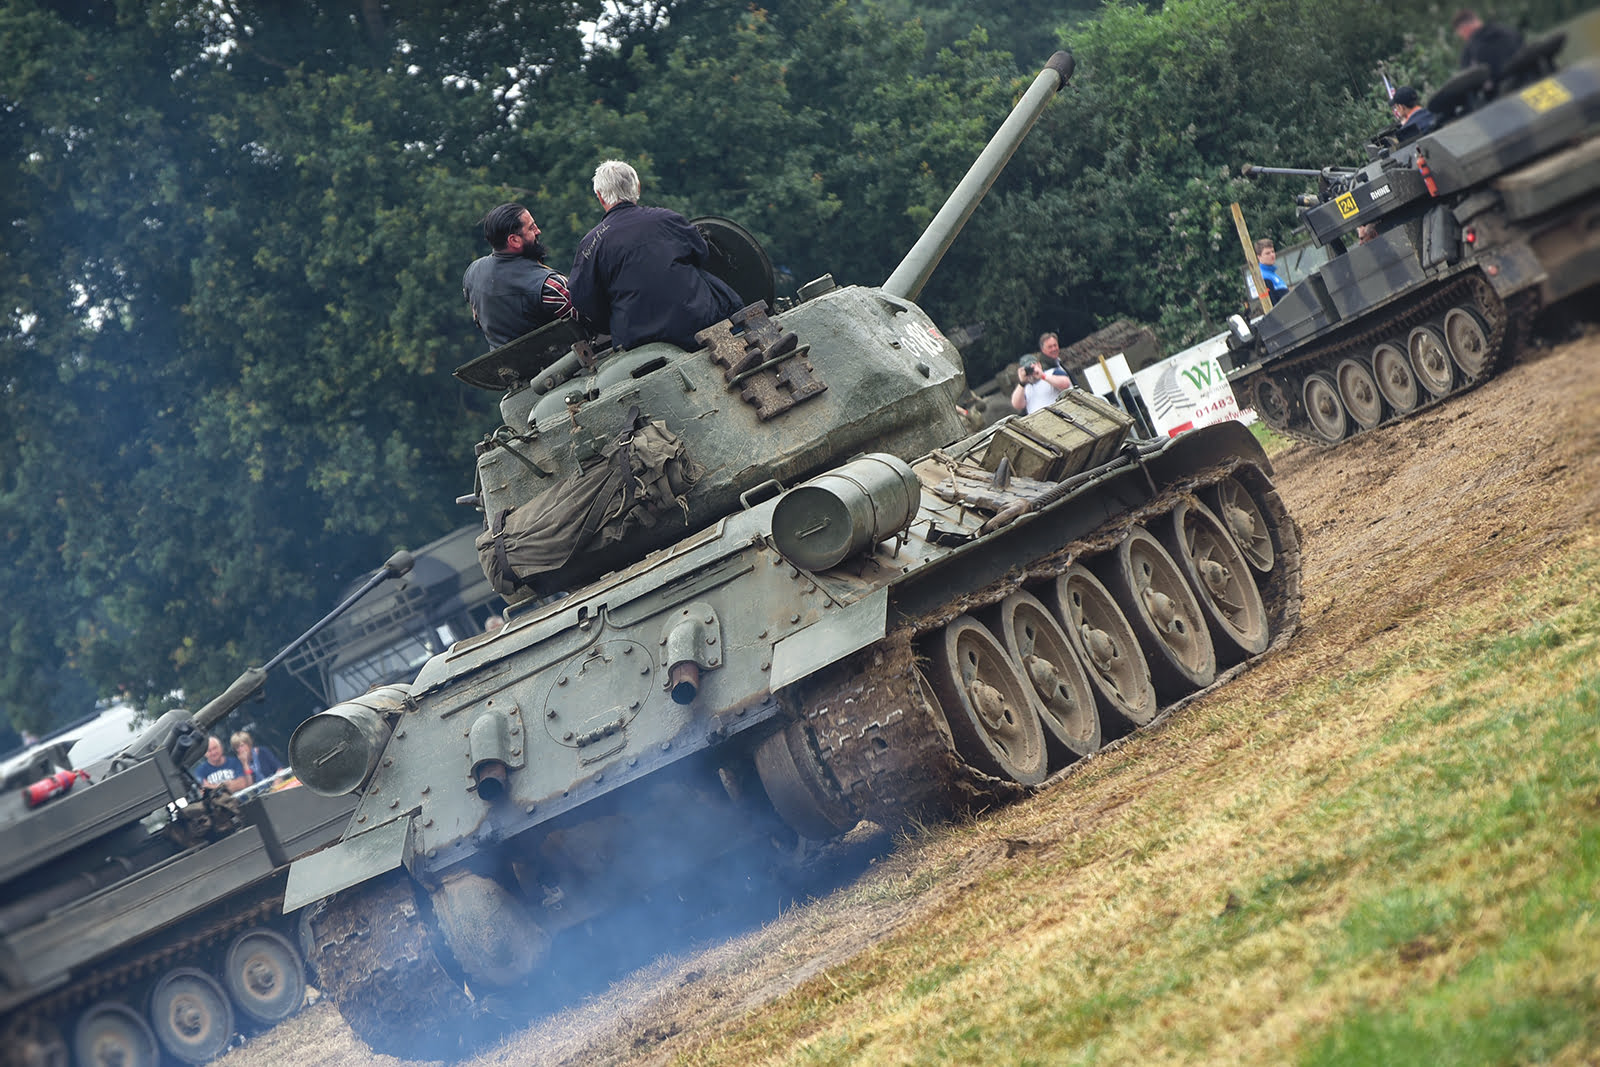 Tank being driven at Capel Military Show